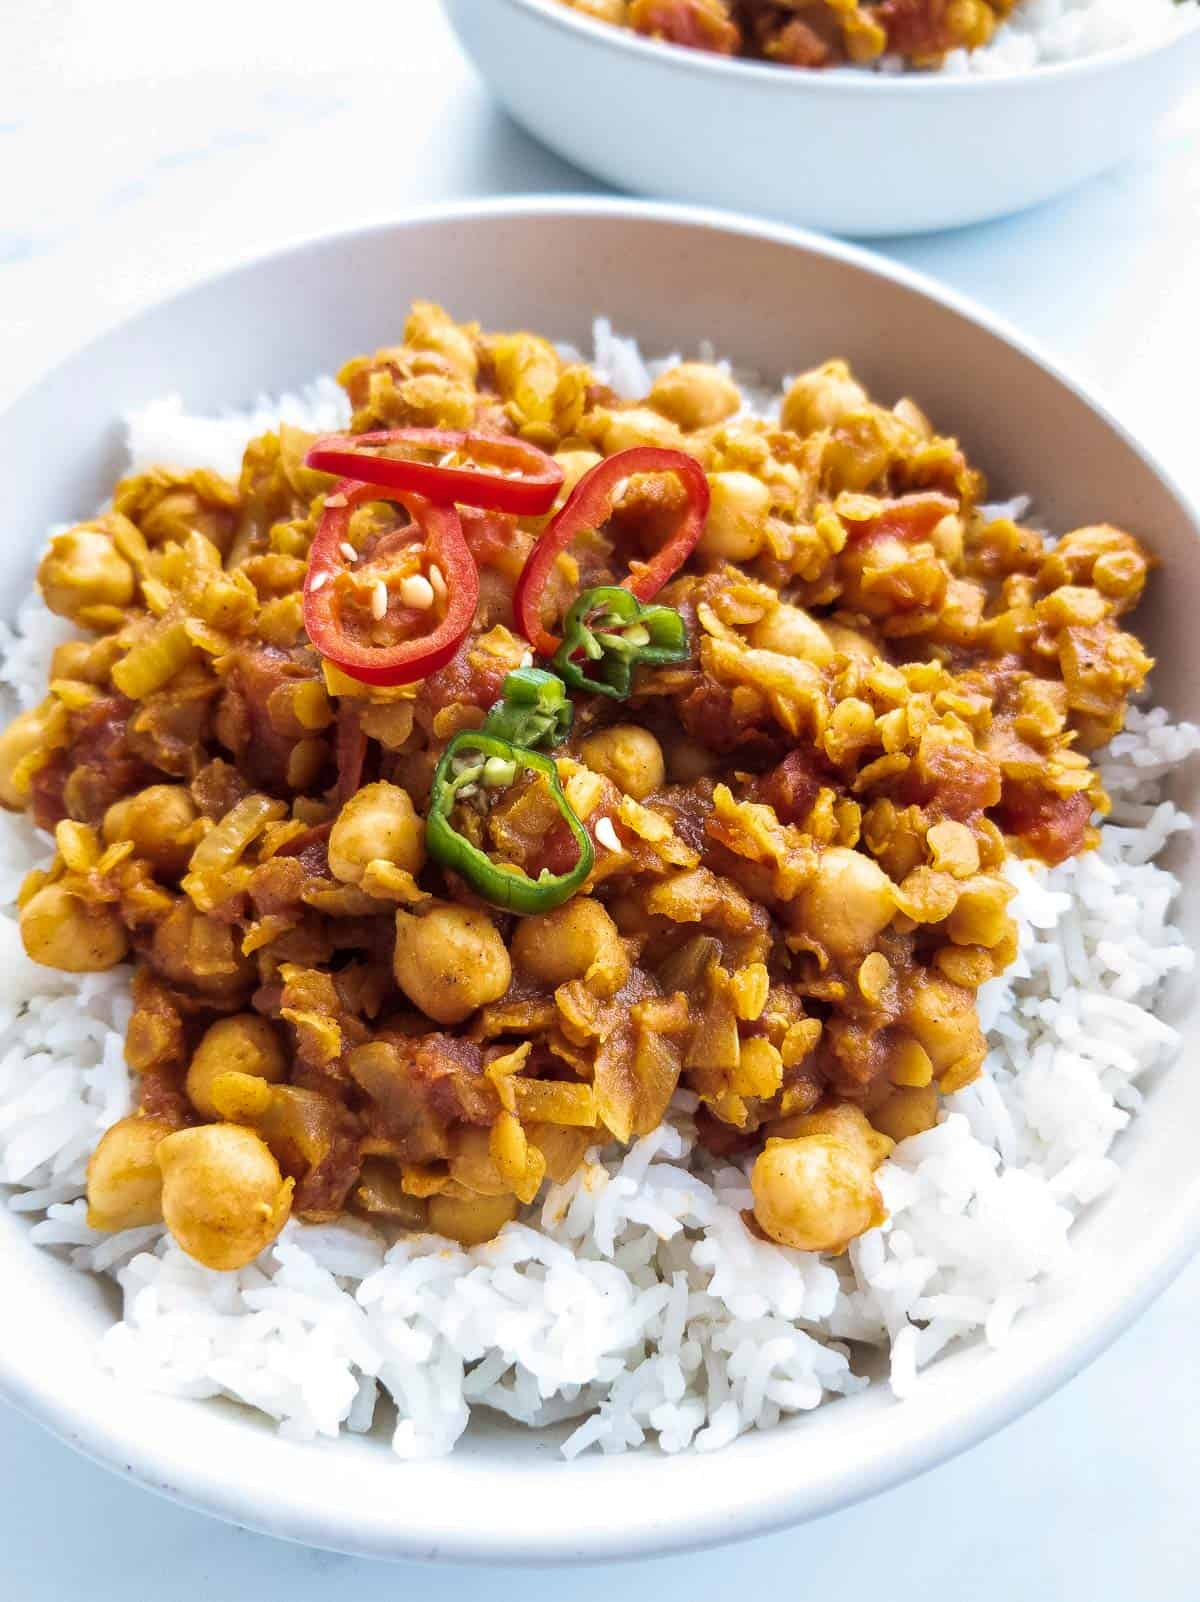 Chickpea lentil curry in a plate with rice.